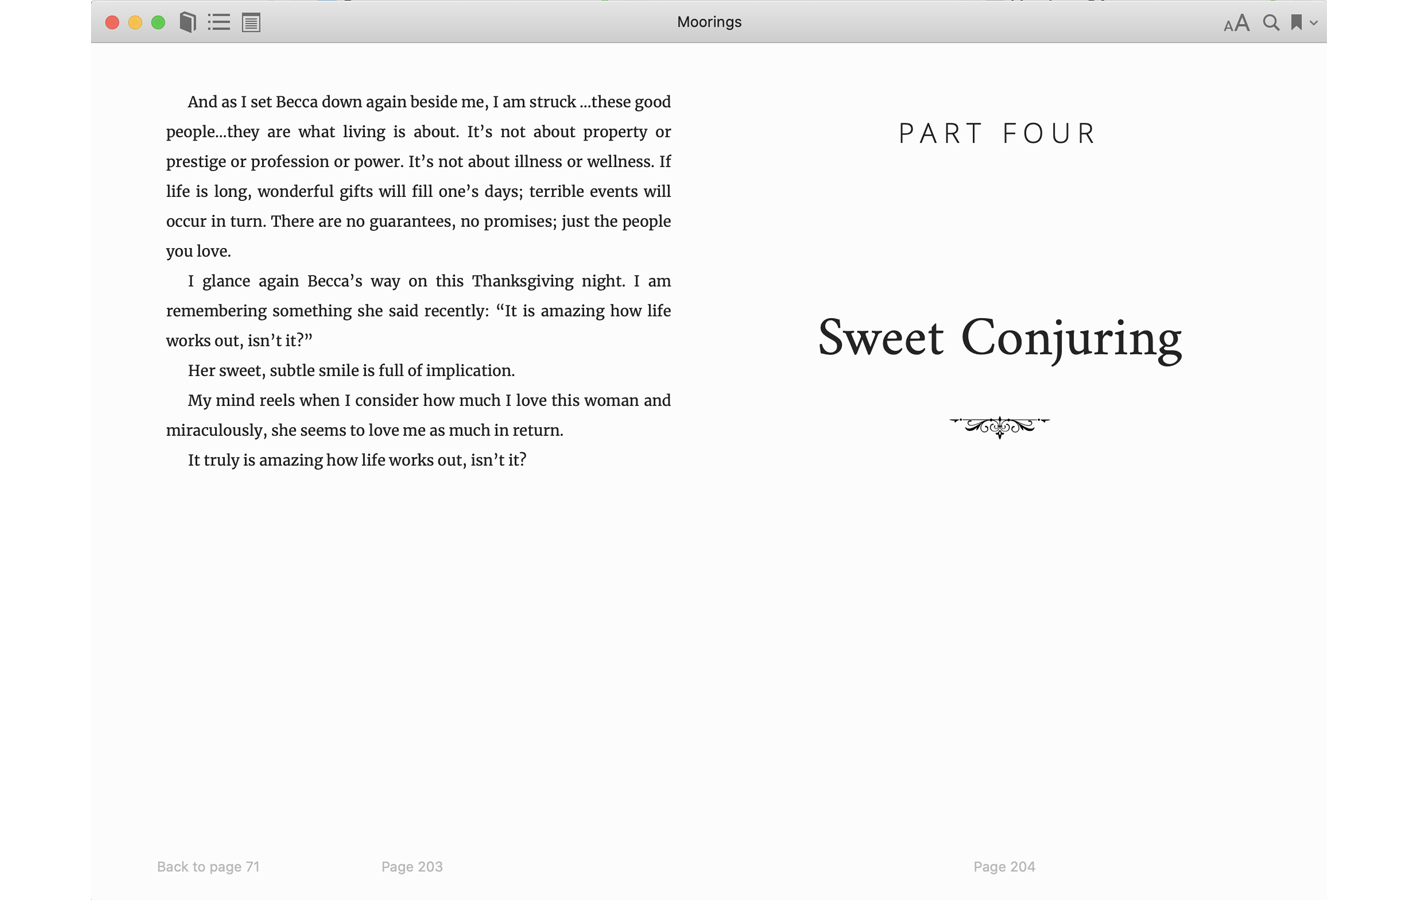 Part Four - Sweet Conjuring for Moorings book